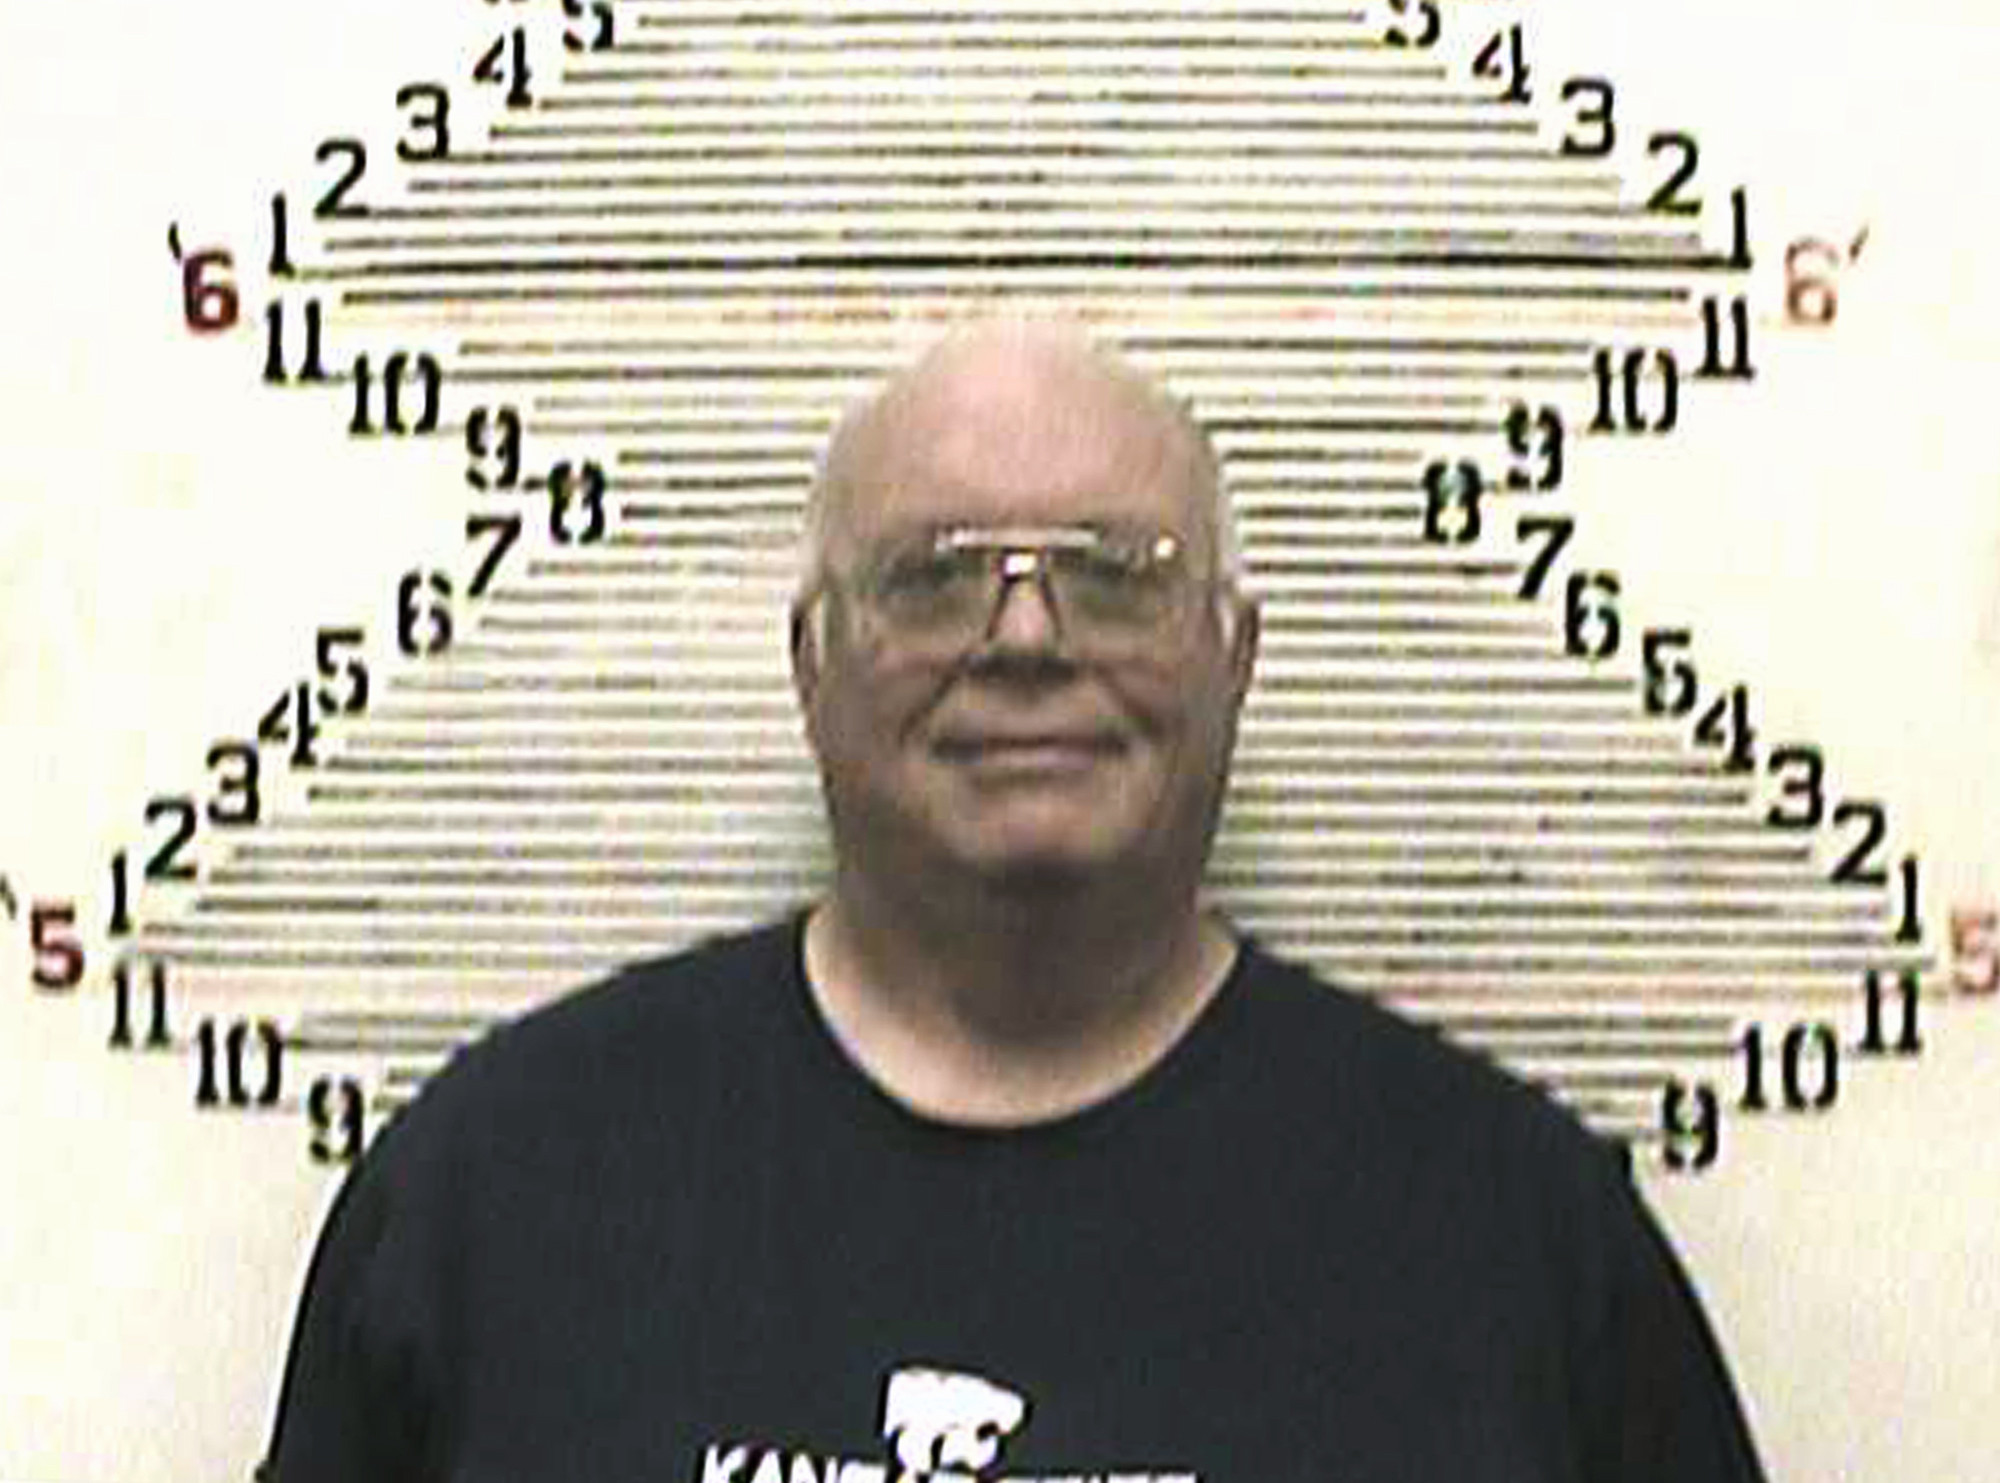 Aggravated sexual battery kansas law